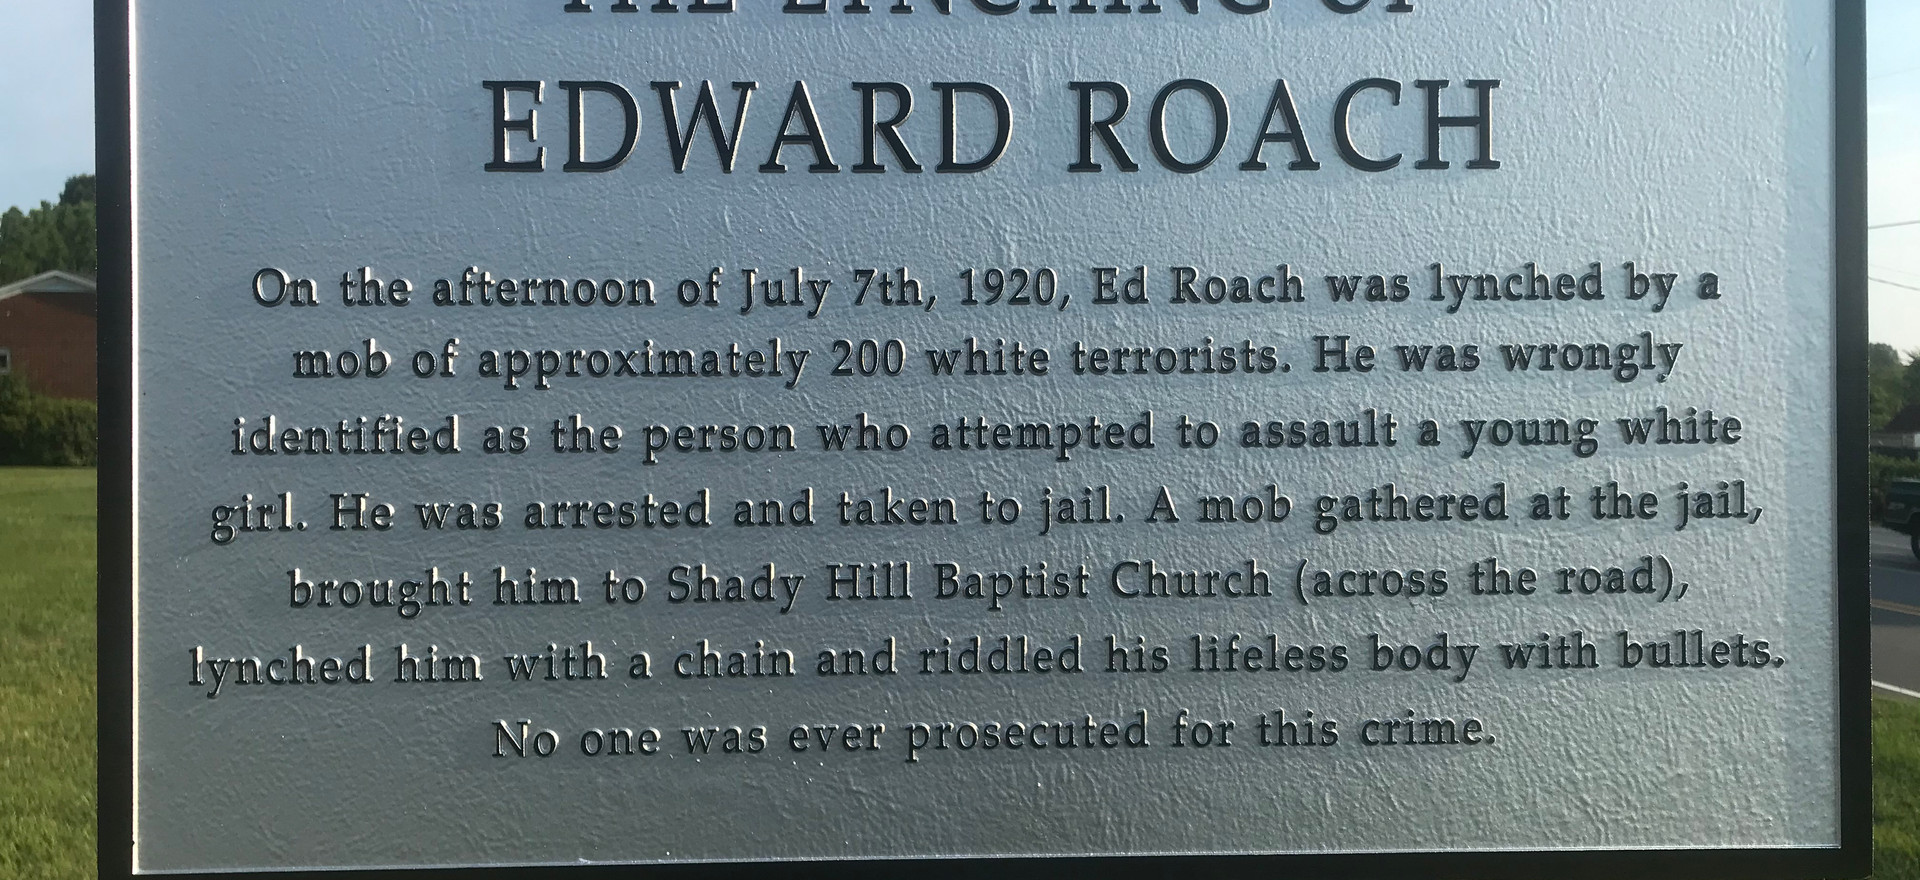 New histrorical marker placed in the area where Mr. Edward Roach was killed by a mob of 200 white Person County farmers in July 1920